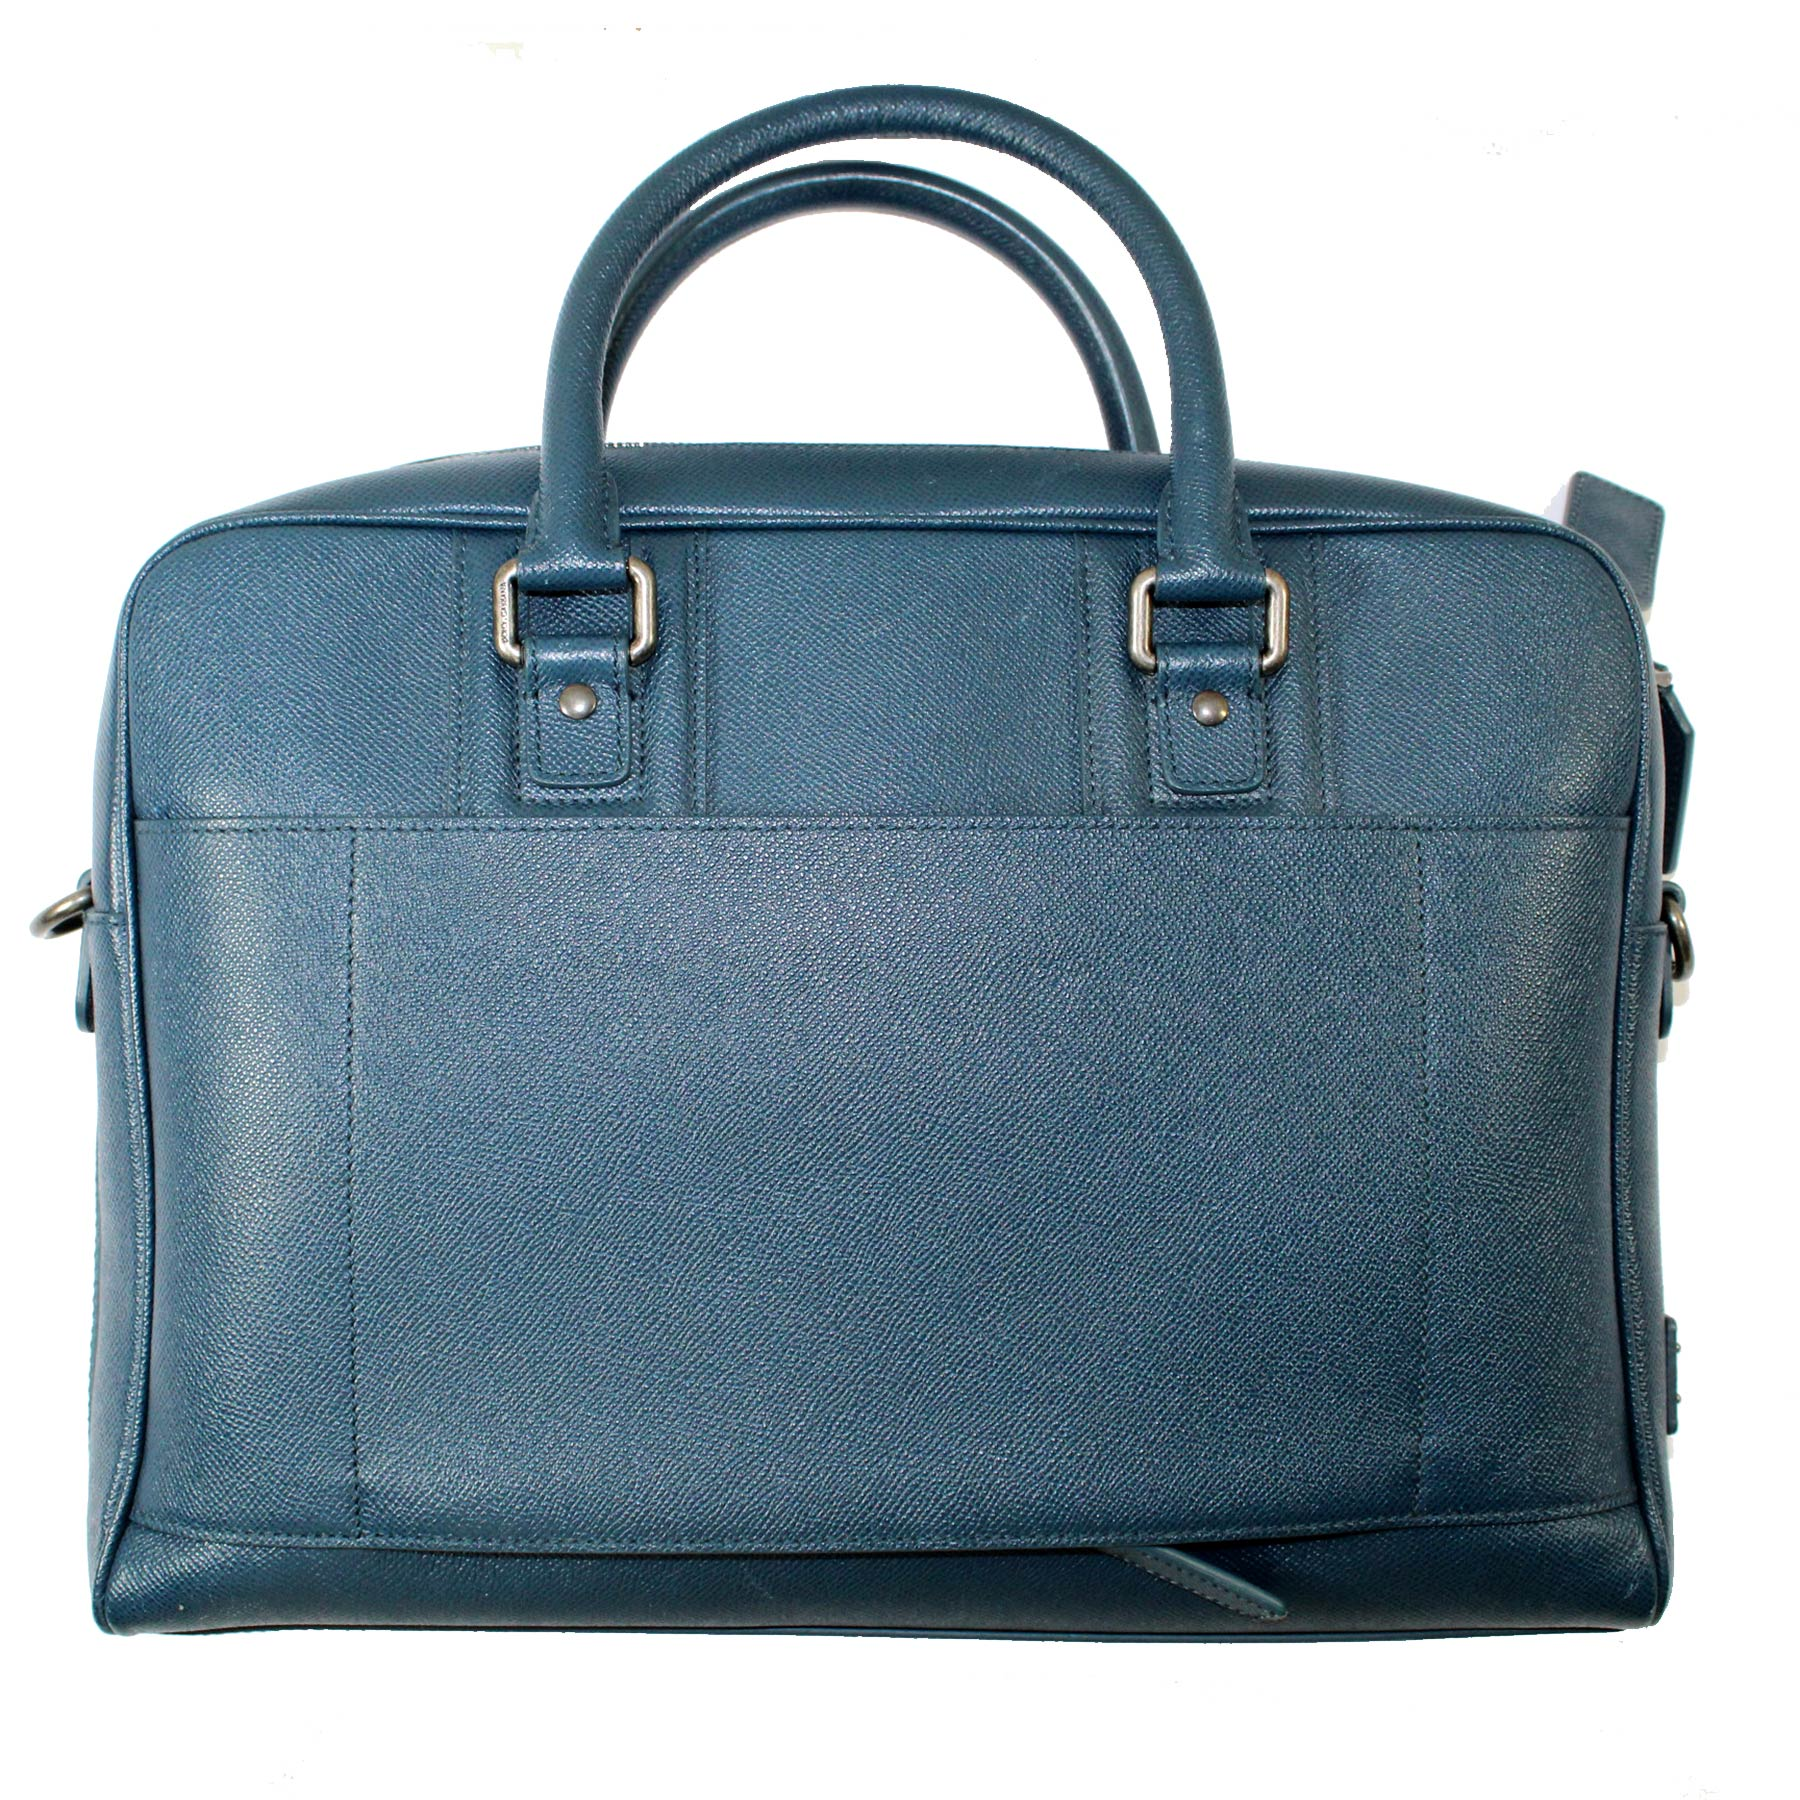 Dolce & Gabbana Bag Petrol Blue Leather Handbag